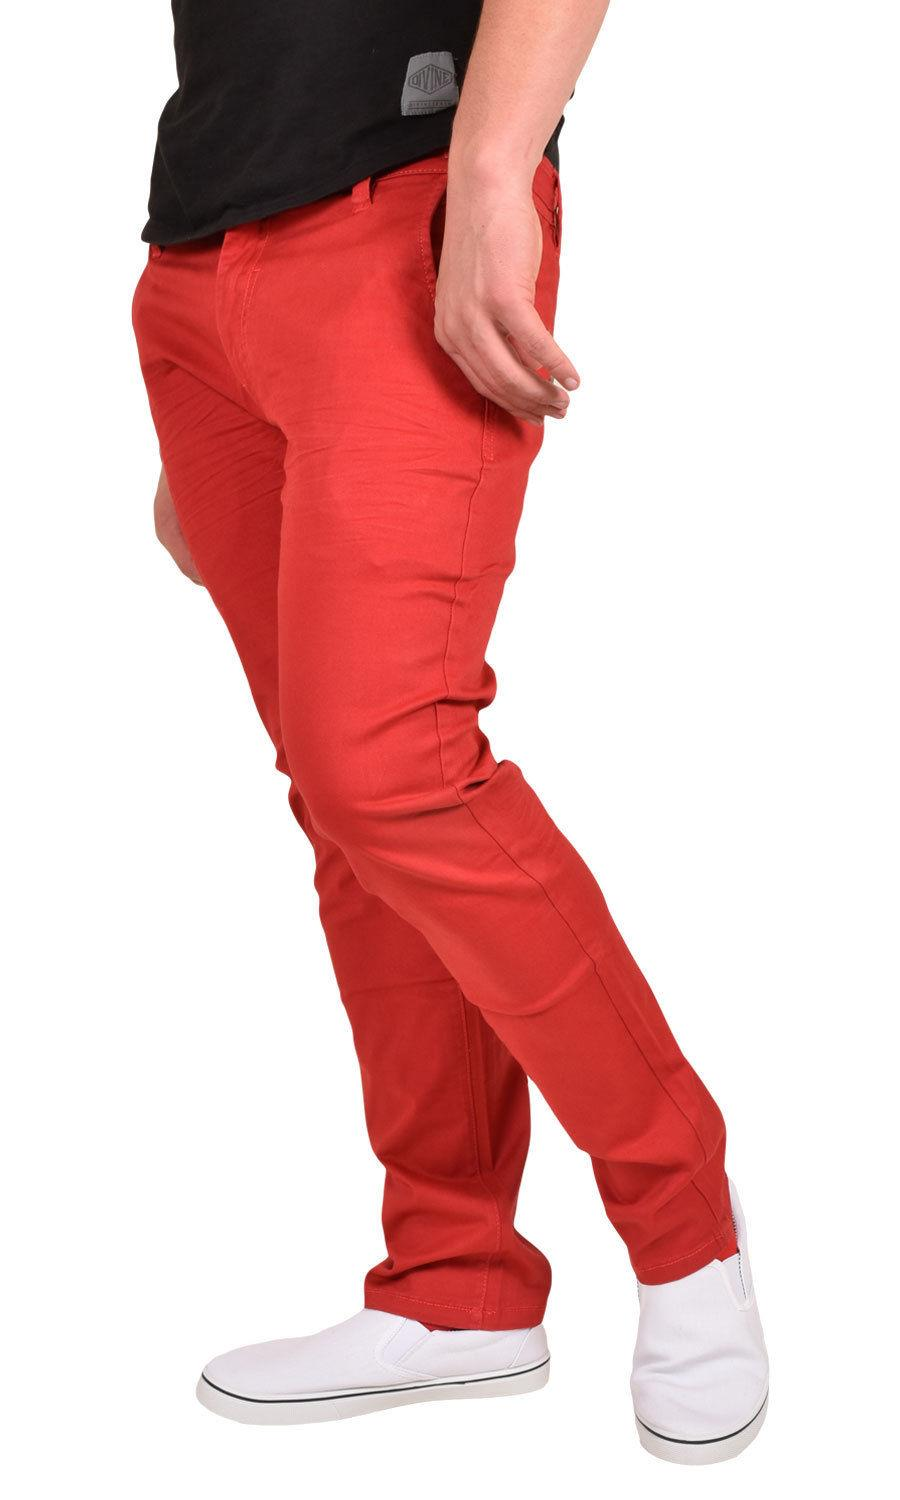 New-Mens-Designer-Jacksouth-Chino-Regular-Fit-Stretch-Cotton-Rich-Twill-Trousers thumbnail 27